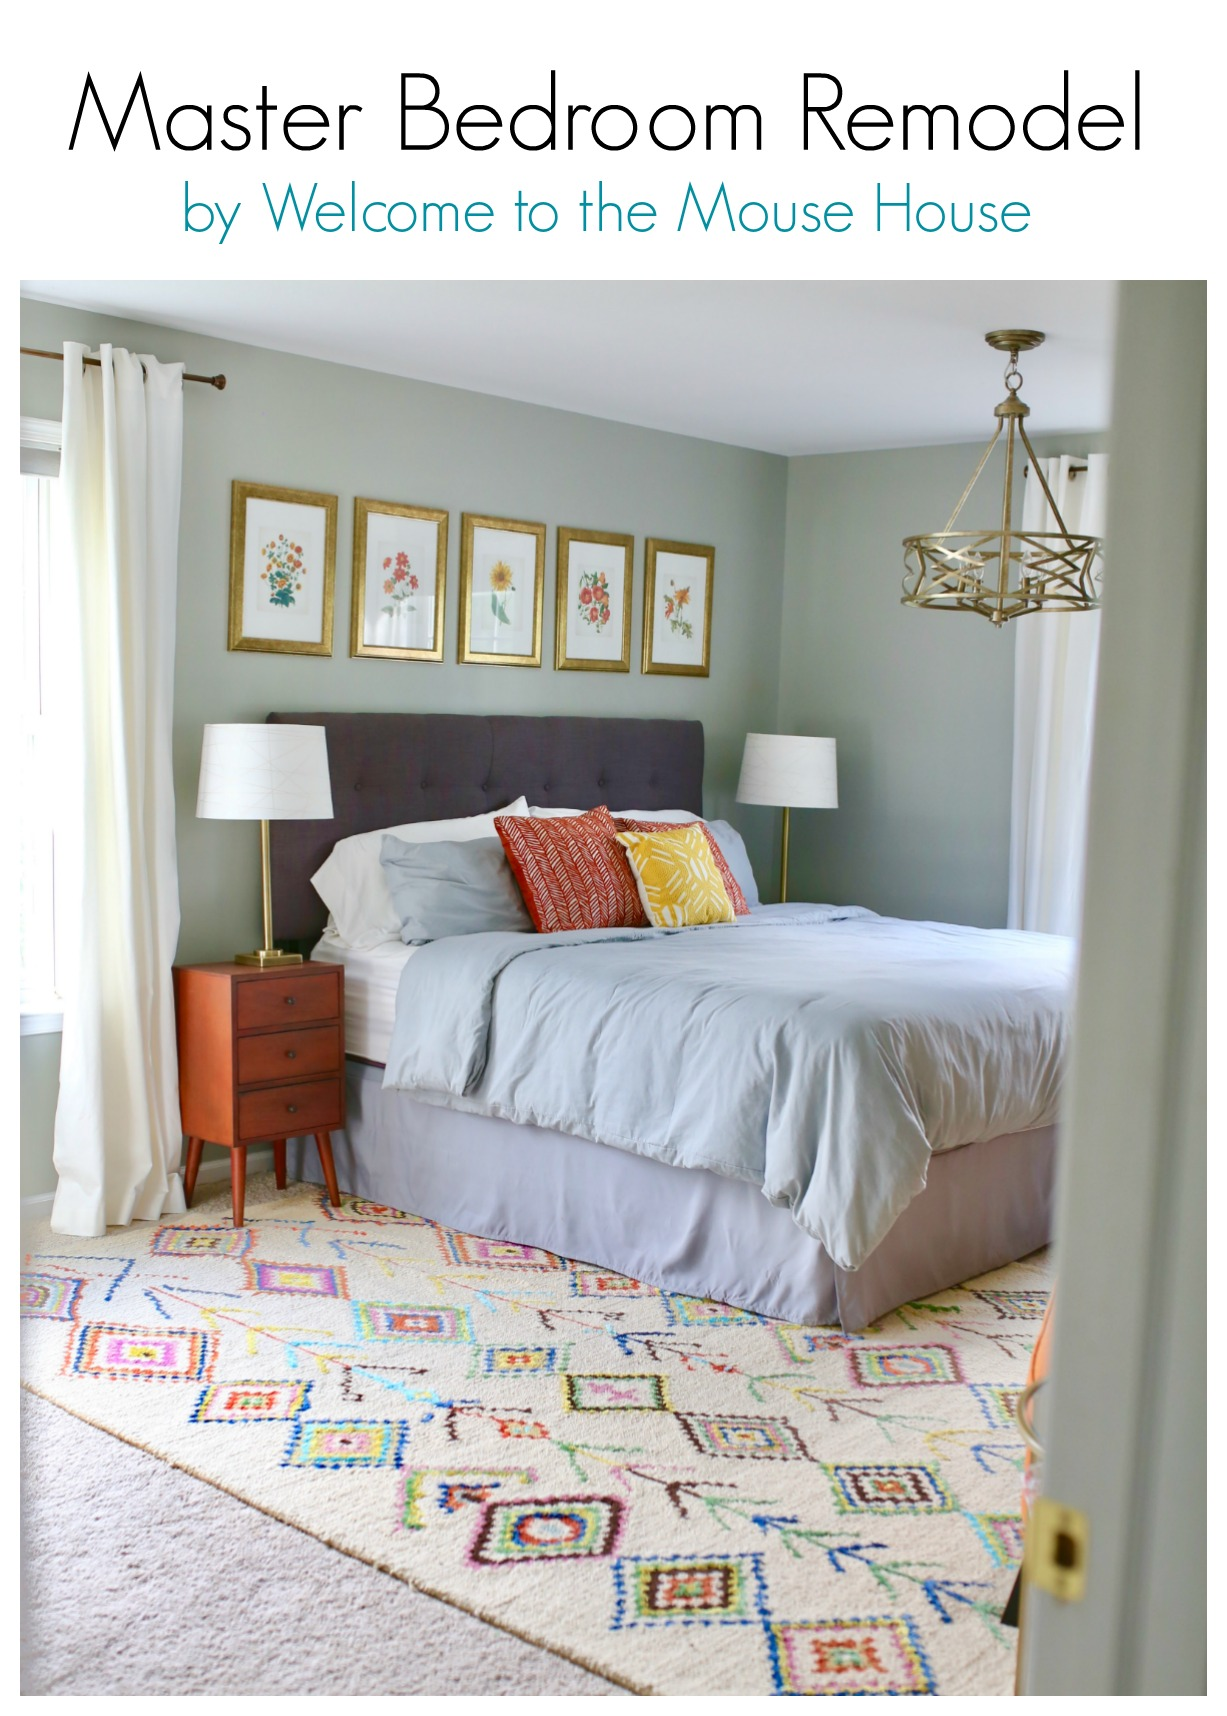 Master Bedroom Remodel: Reveal - welcometothemousehouse.com